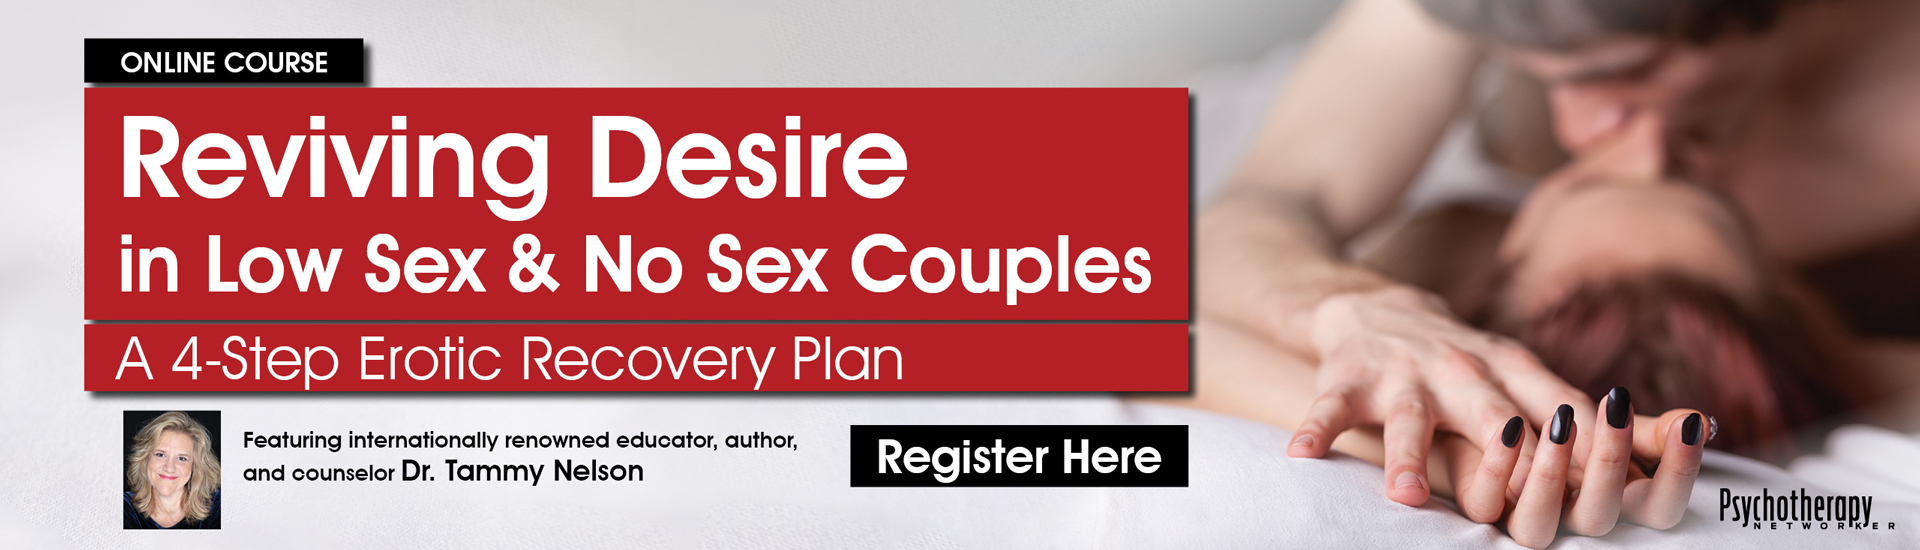 Reviving Desire in Low Sex & No Sex Couples: A 4-Step Erotic Recovery Plan